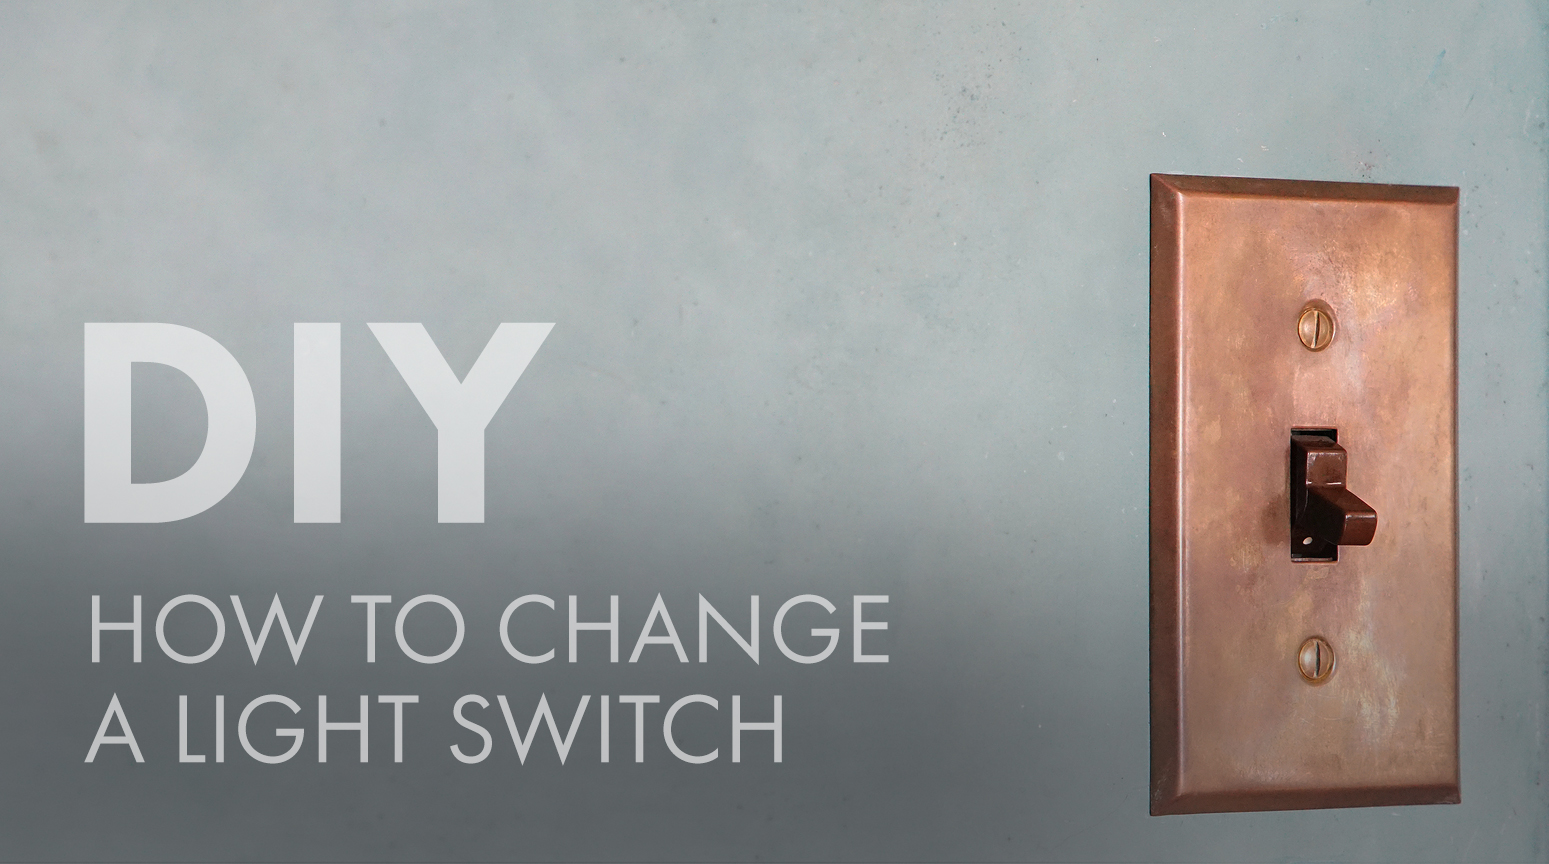 DIY: How to Change a Light Switch - Flip The Switch